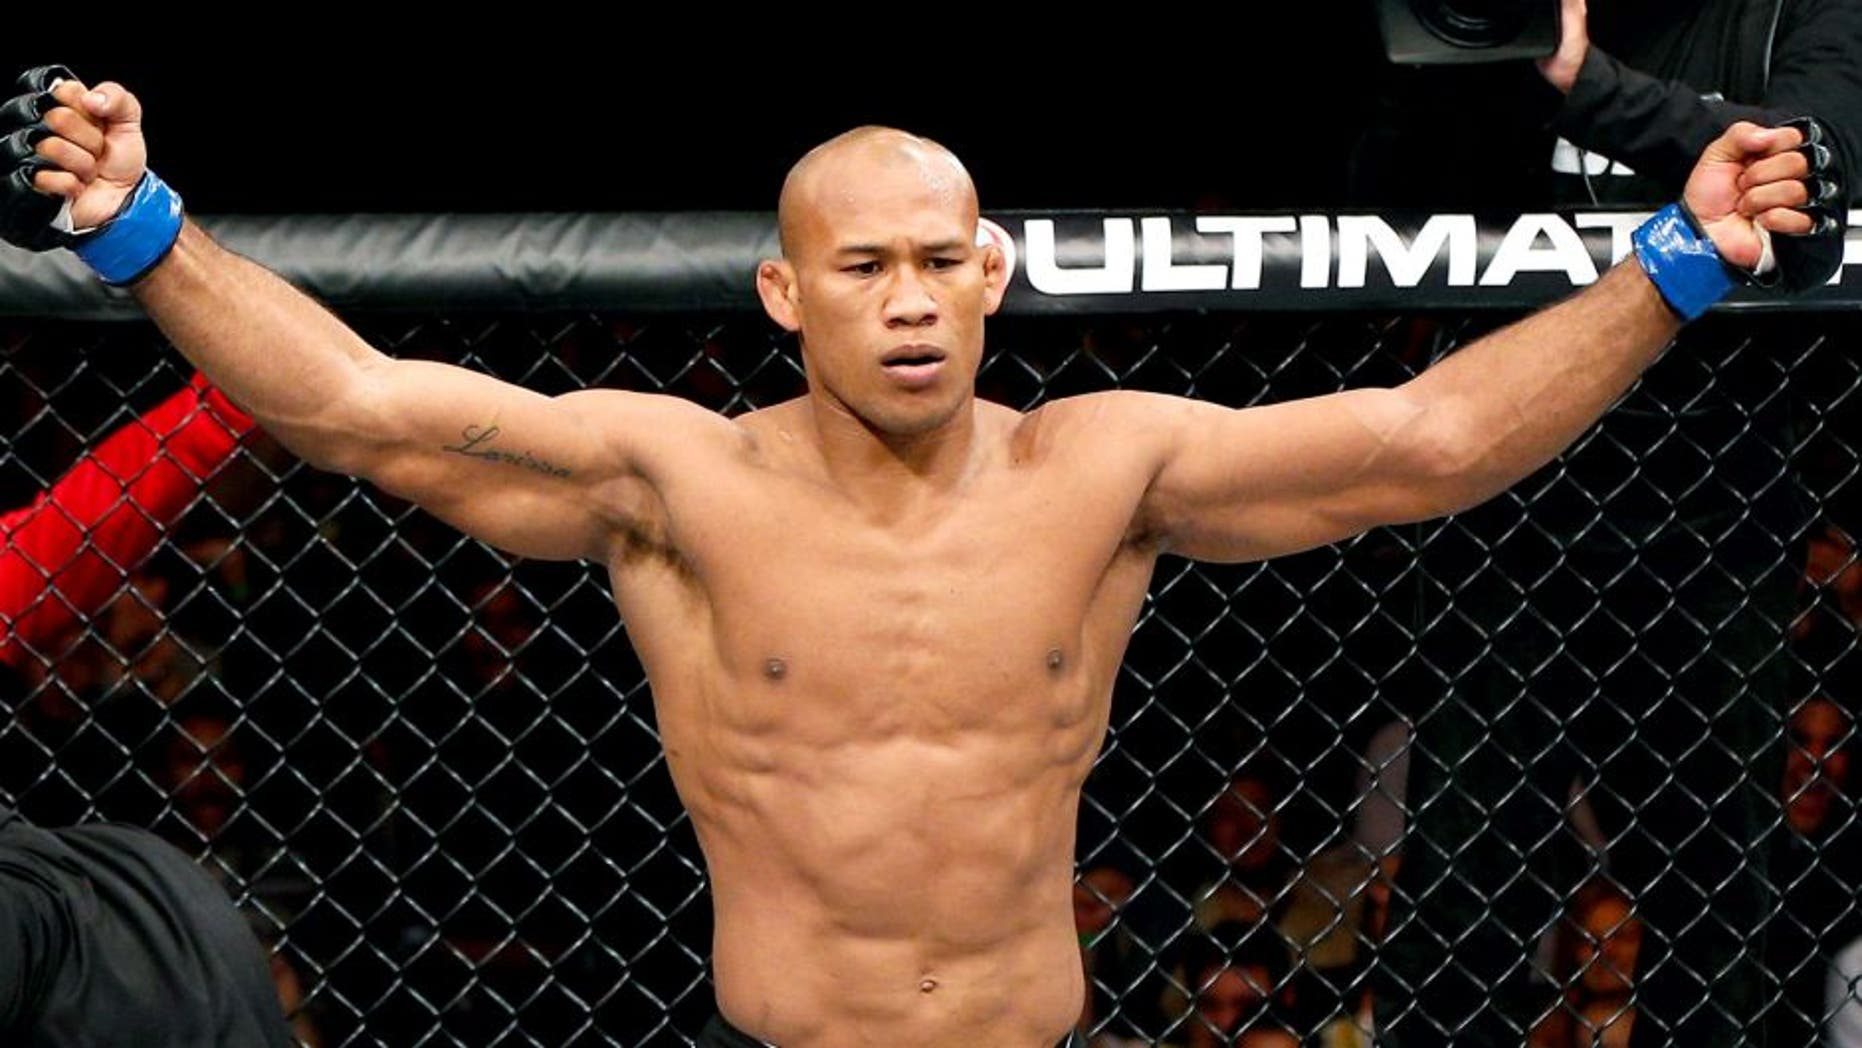 """Ronaldo """"Jacare"""" Souza reacts after knocking out Yushin Okami in their middleweight fight during the UFC on FOX Sports 1 event at Mineirinho Arena on September 4, 2013 in Belo Horizonte, Brazil. (Photo by Josh Hedges/Zuffa LLC/Zuffa LLC via Getty Images)"""